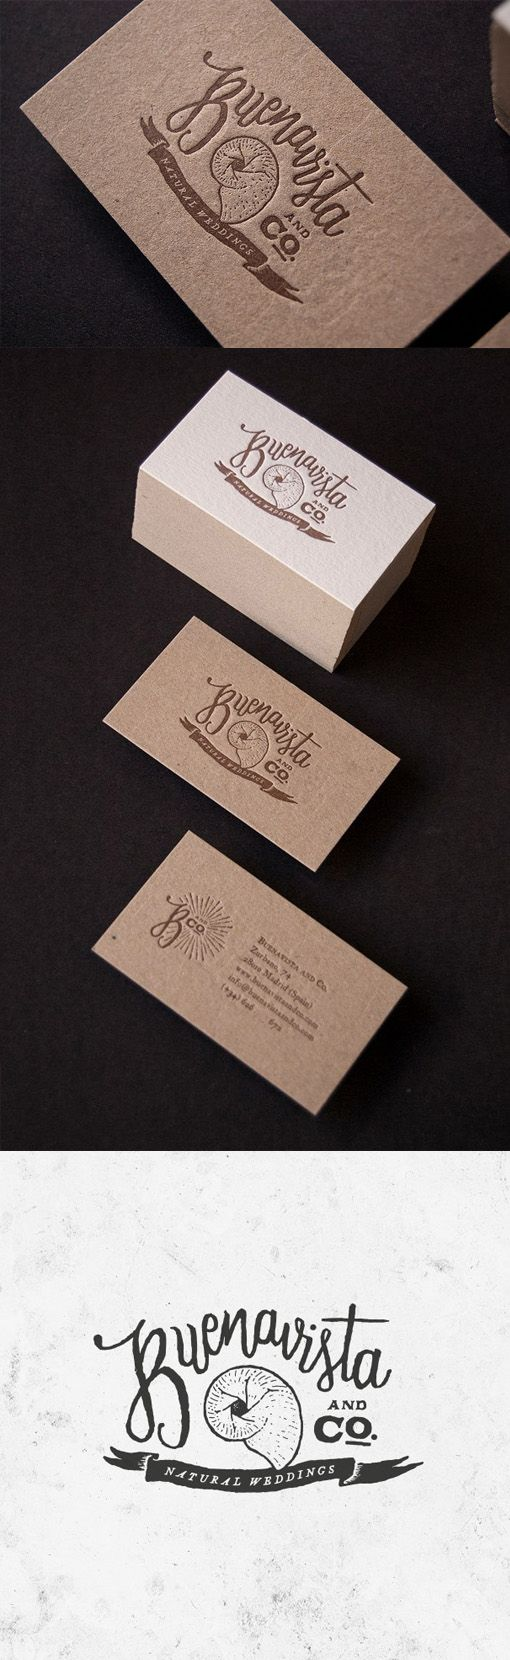 852 best business card gallery images on pinterest embossed earthy letterpress business card for a wedding planner magicingreecefo Images